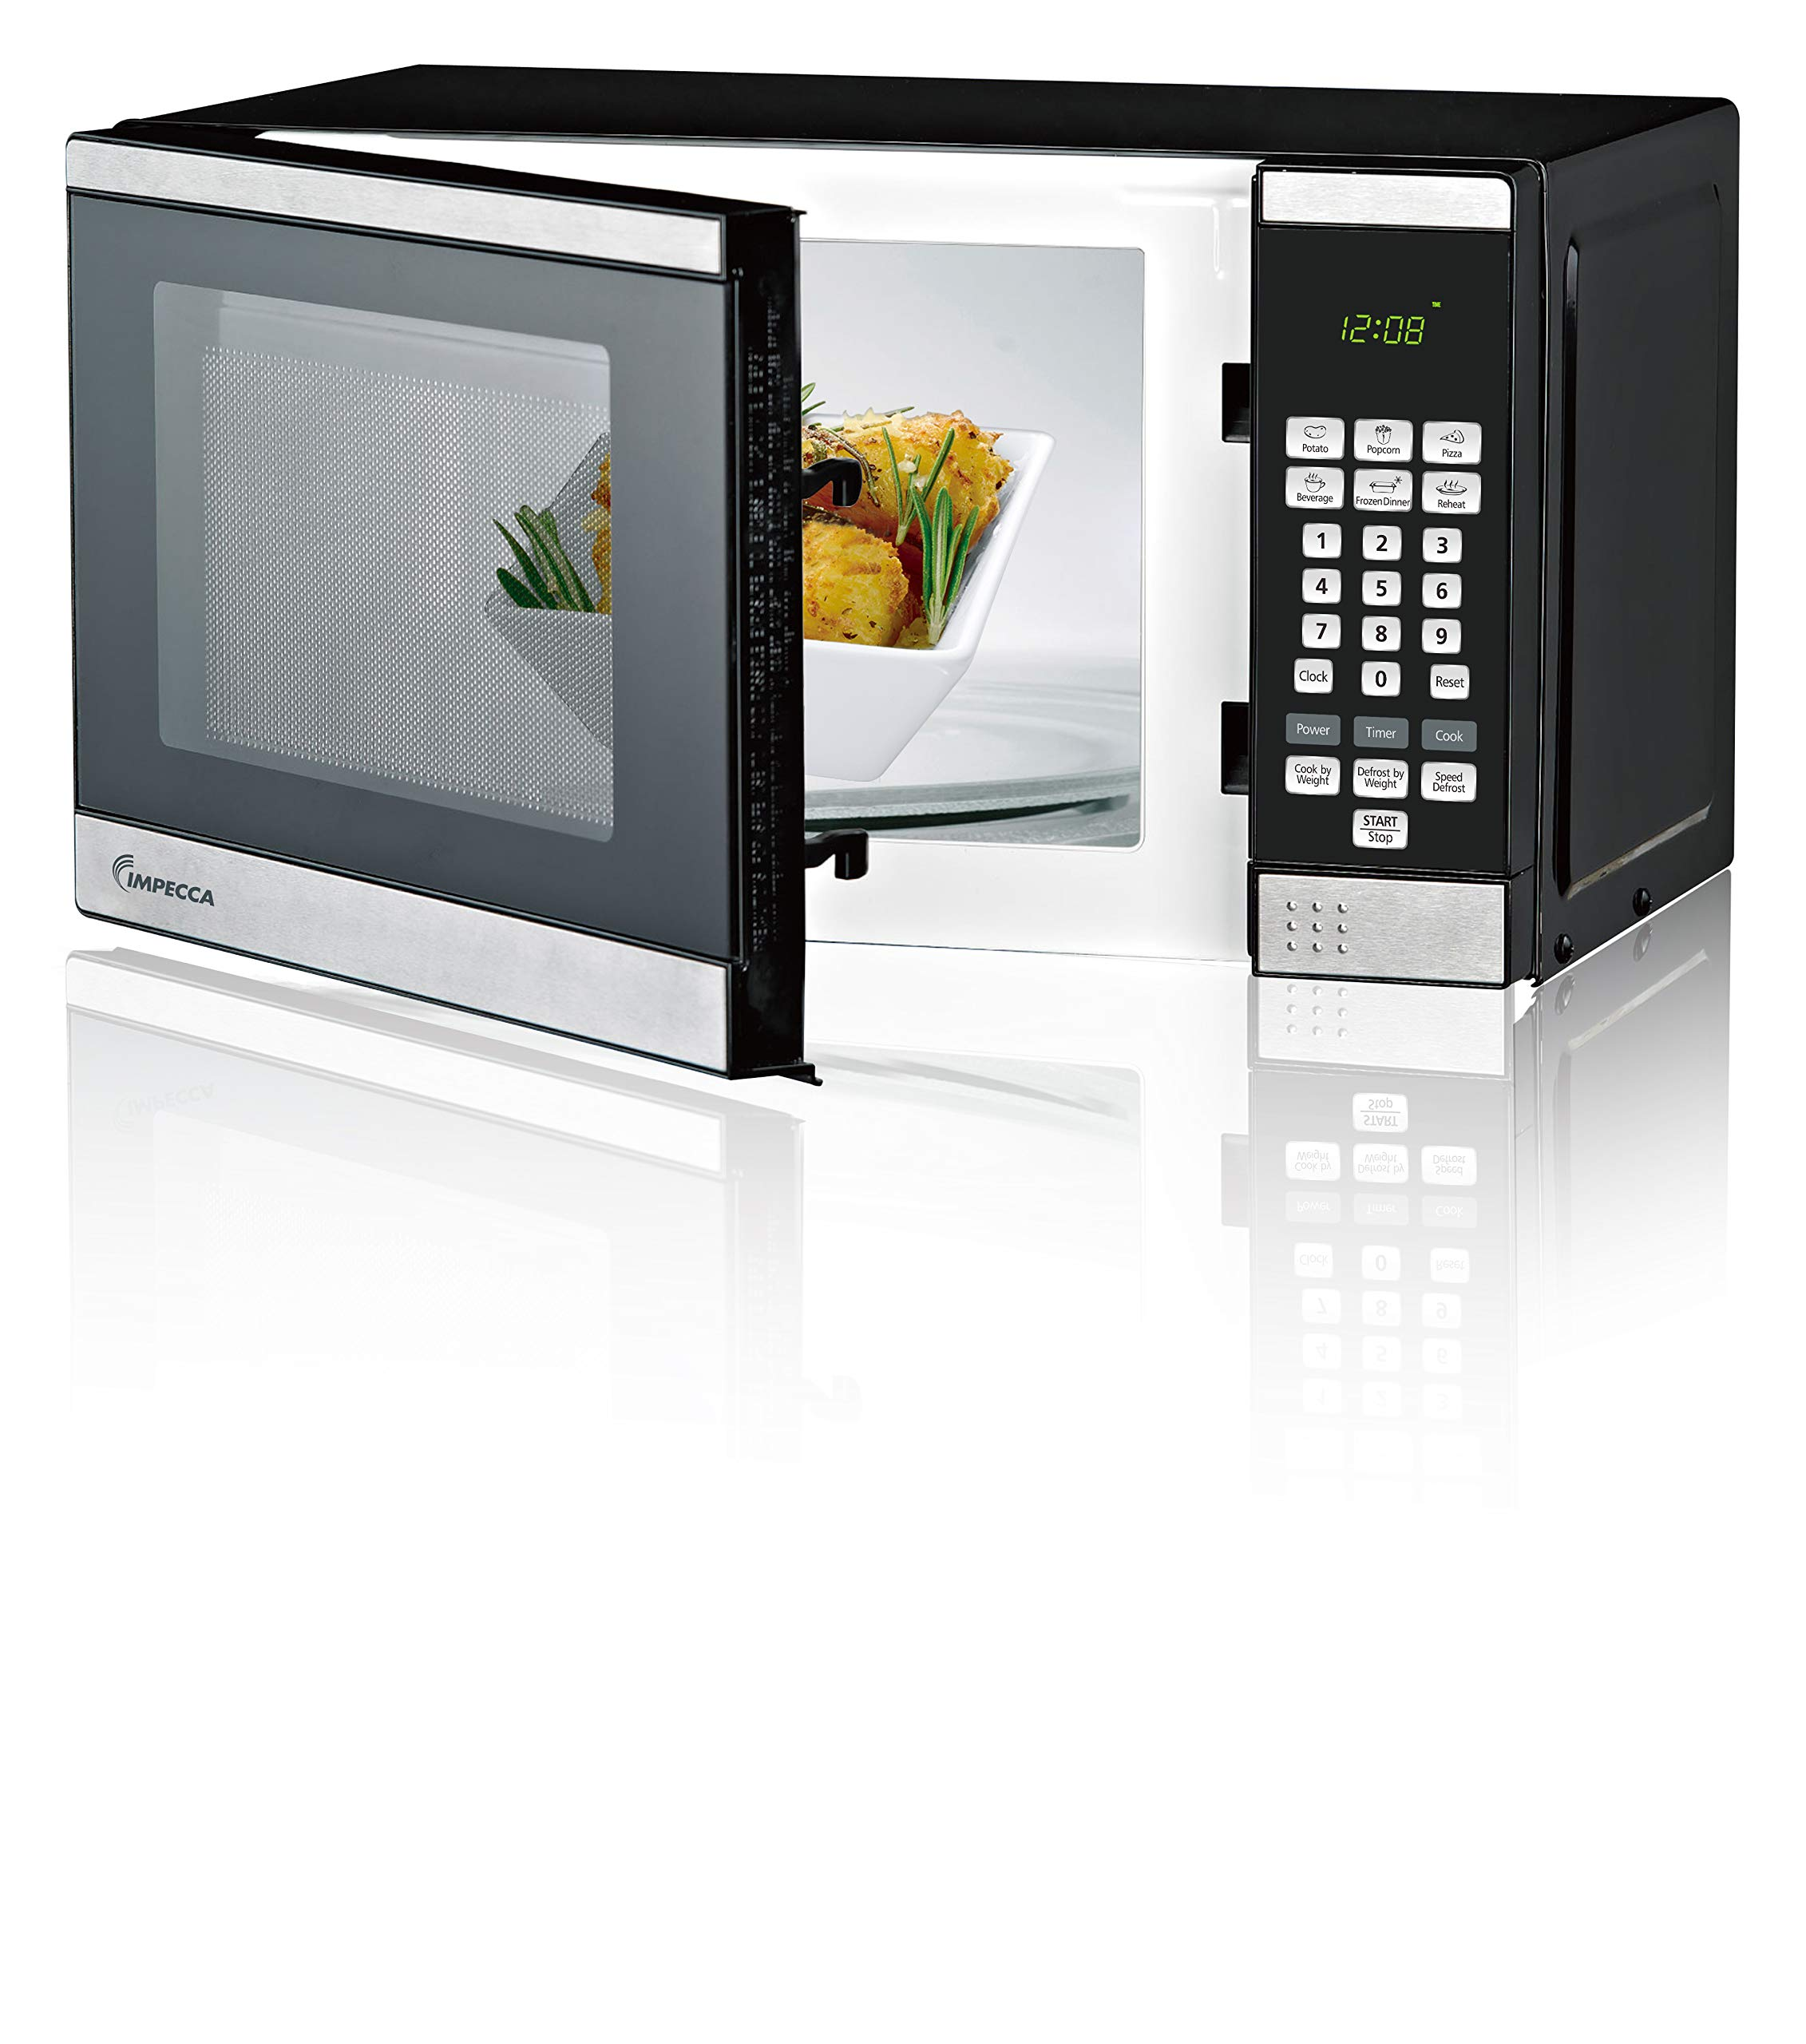 Impecca Countertop Microwave Digital Stainless